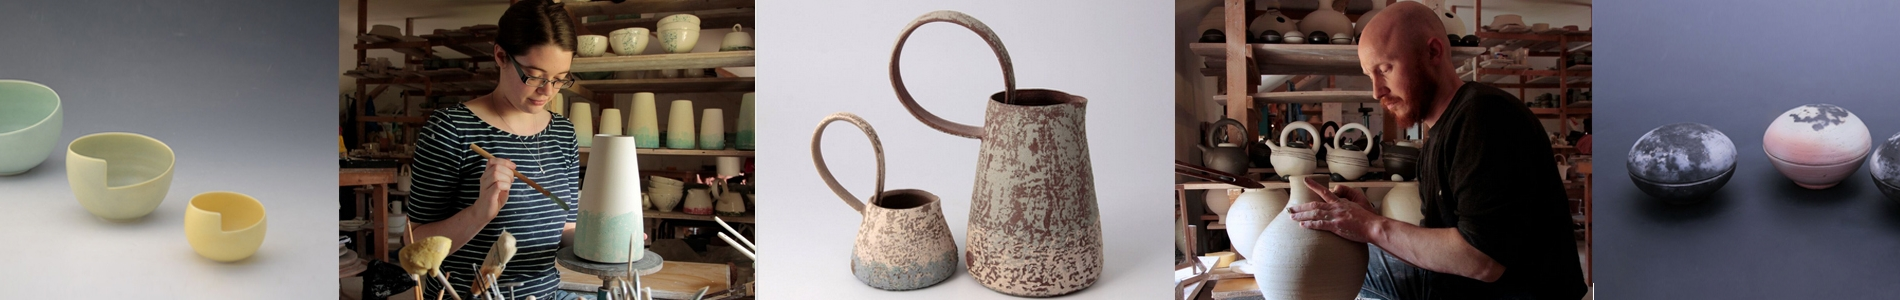 Ceramics Skills & Design Course